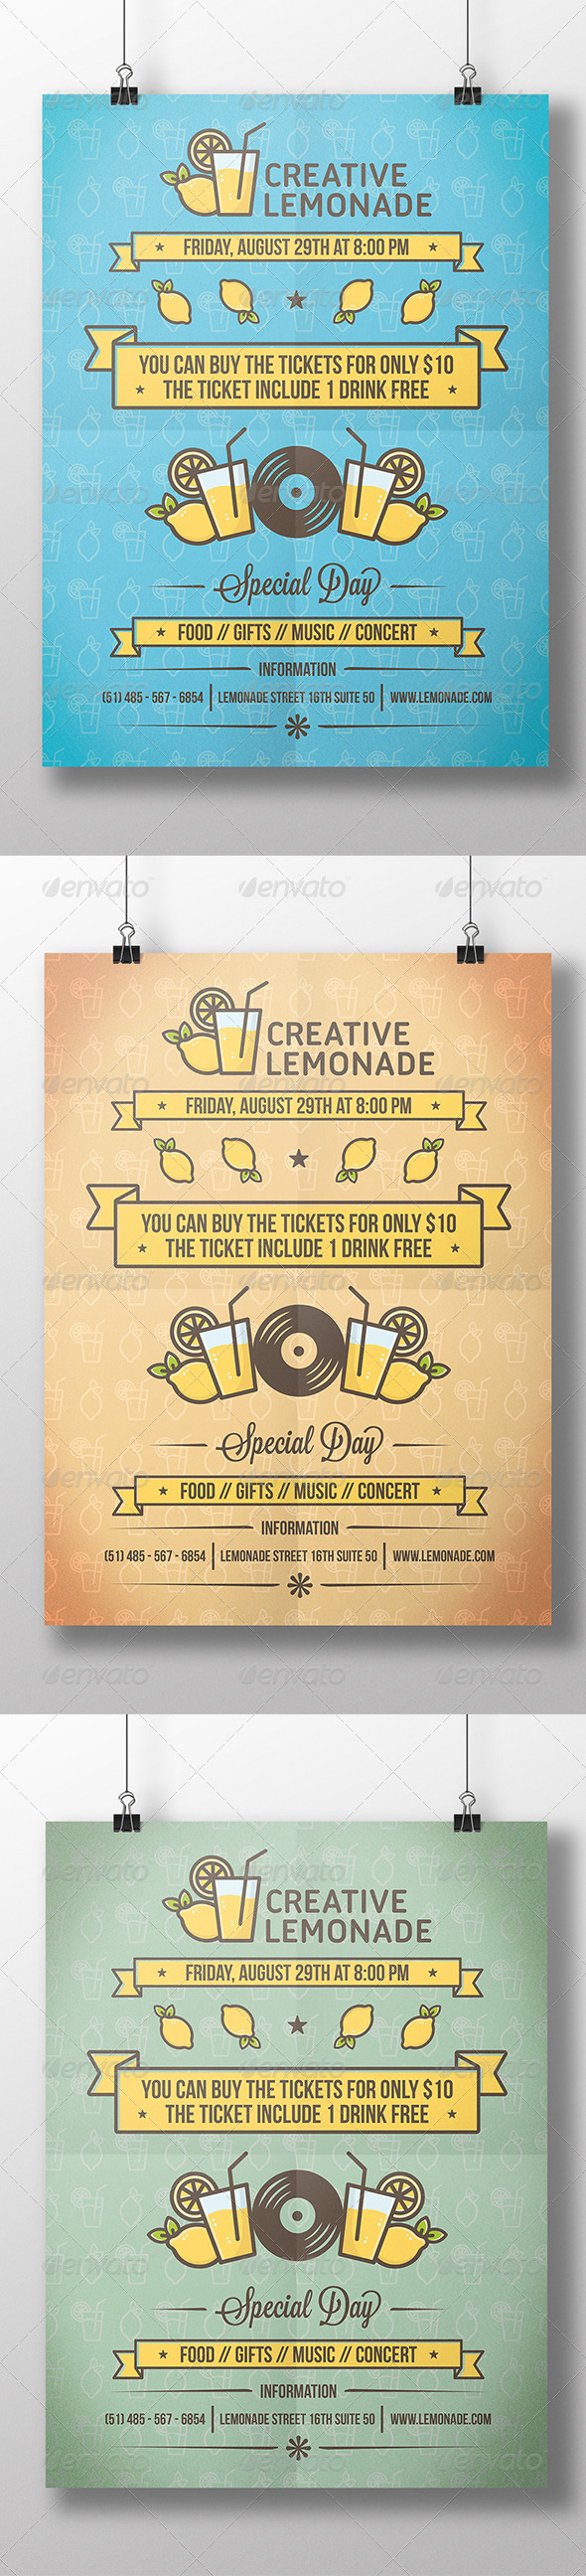 GraphicRiver Lemonade Cocktail Party Flyer 8612157